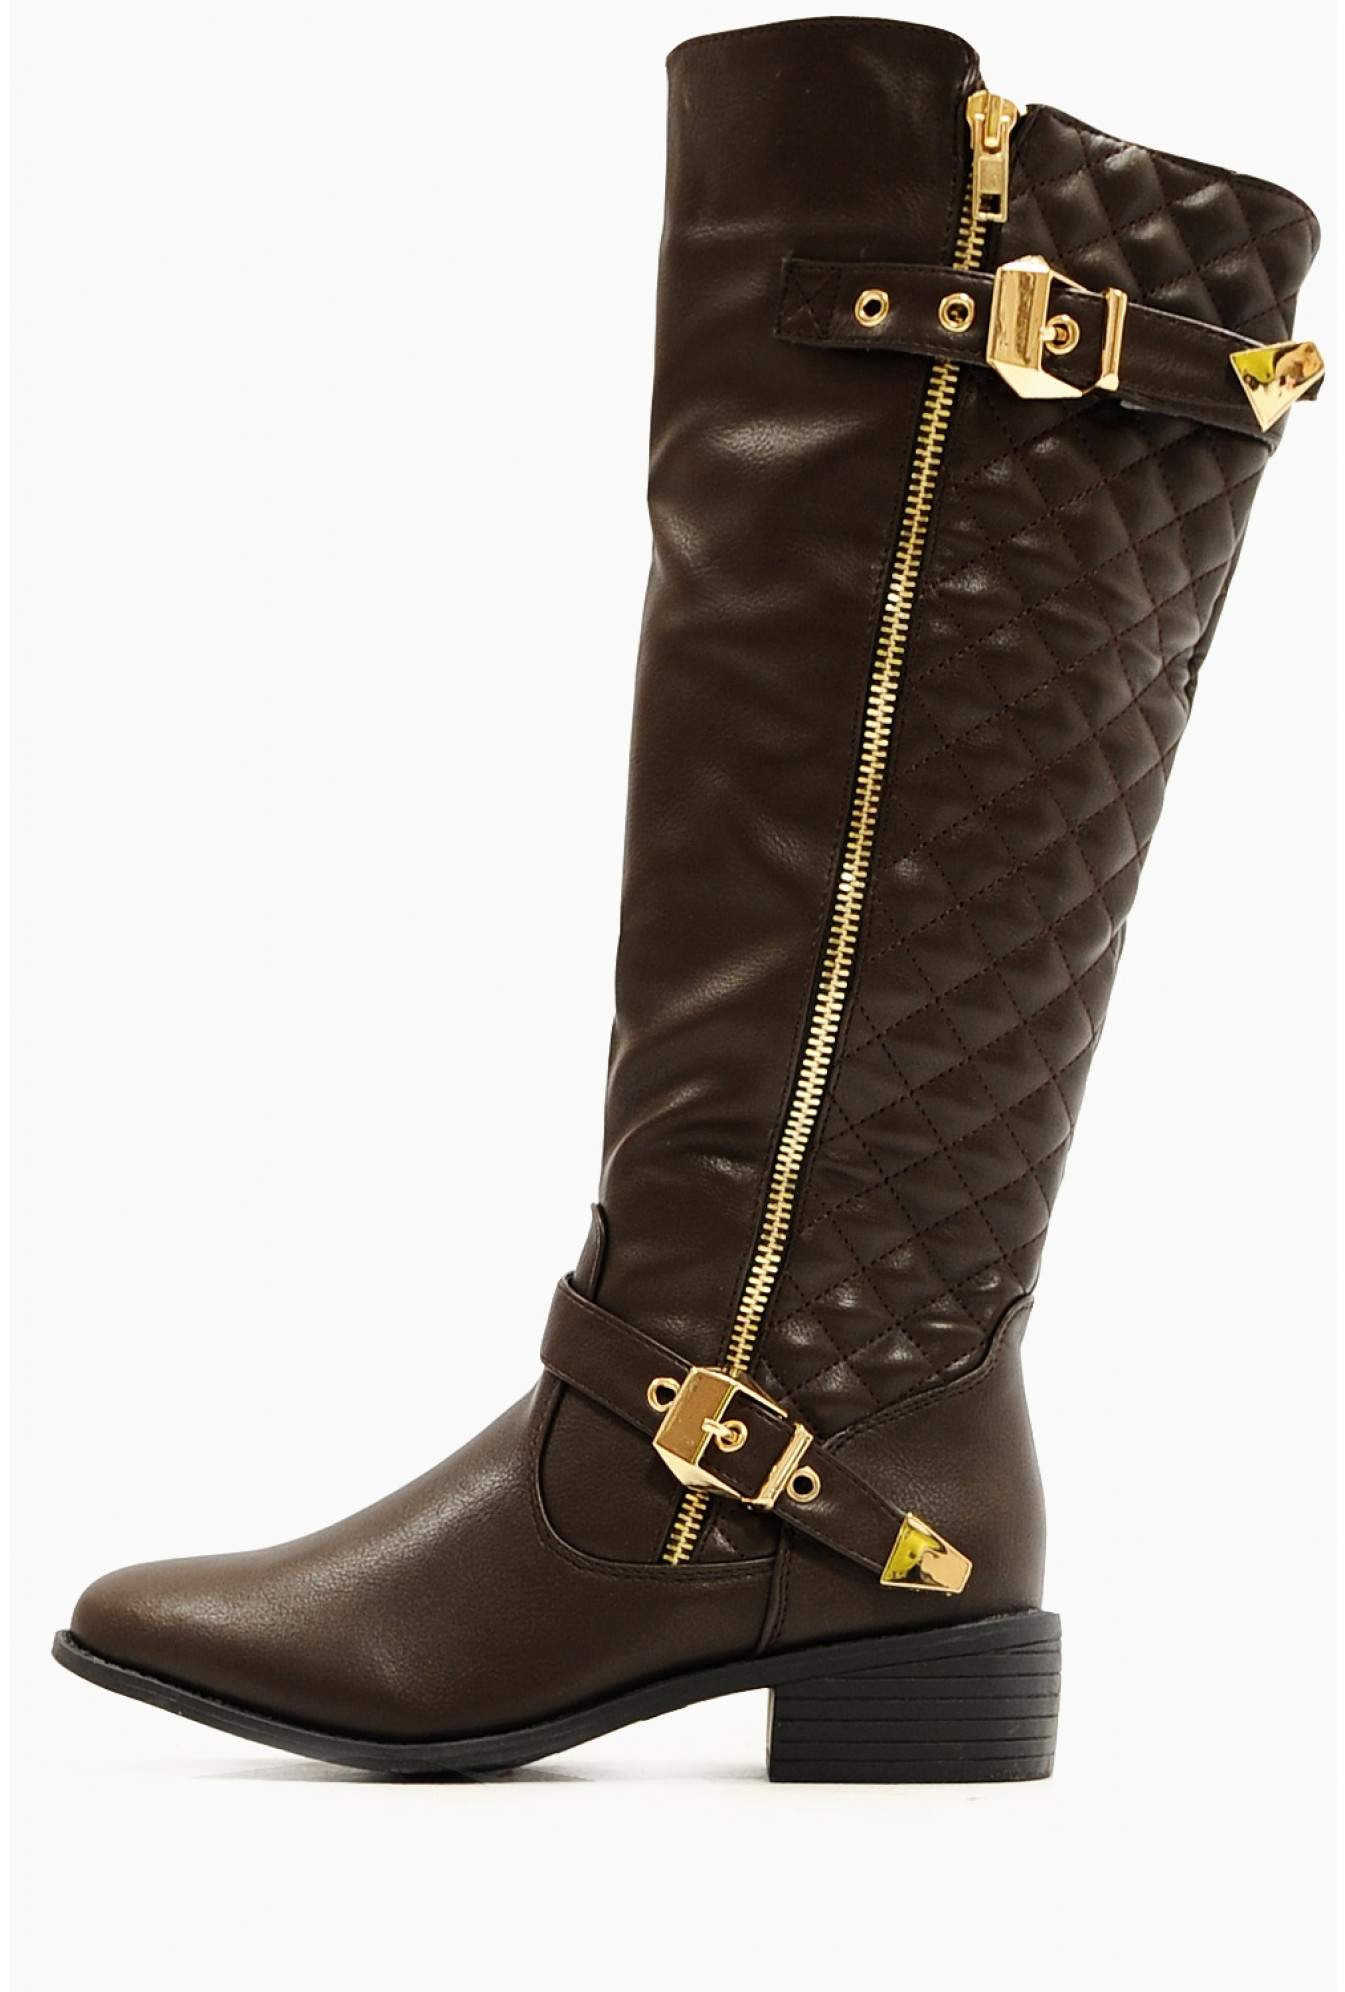 e5392ad73829 Sole City Maria Quilted Knee High Boots in Brown | iCLOTHING